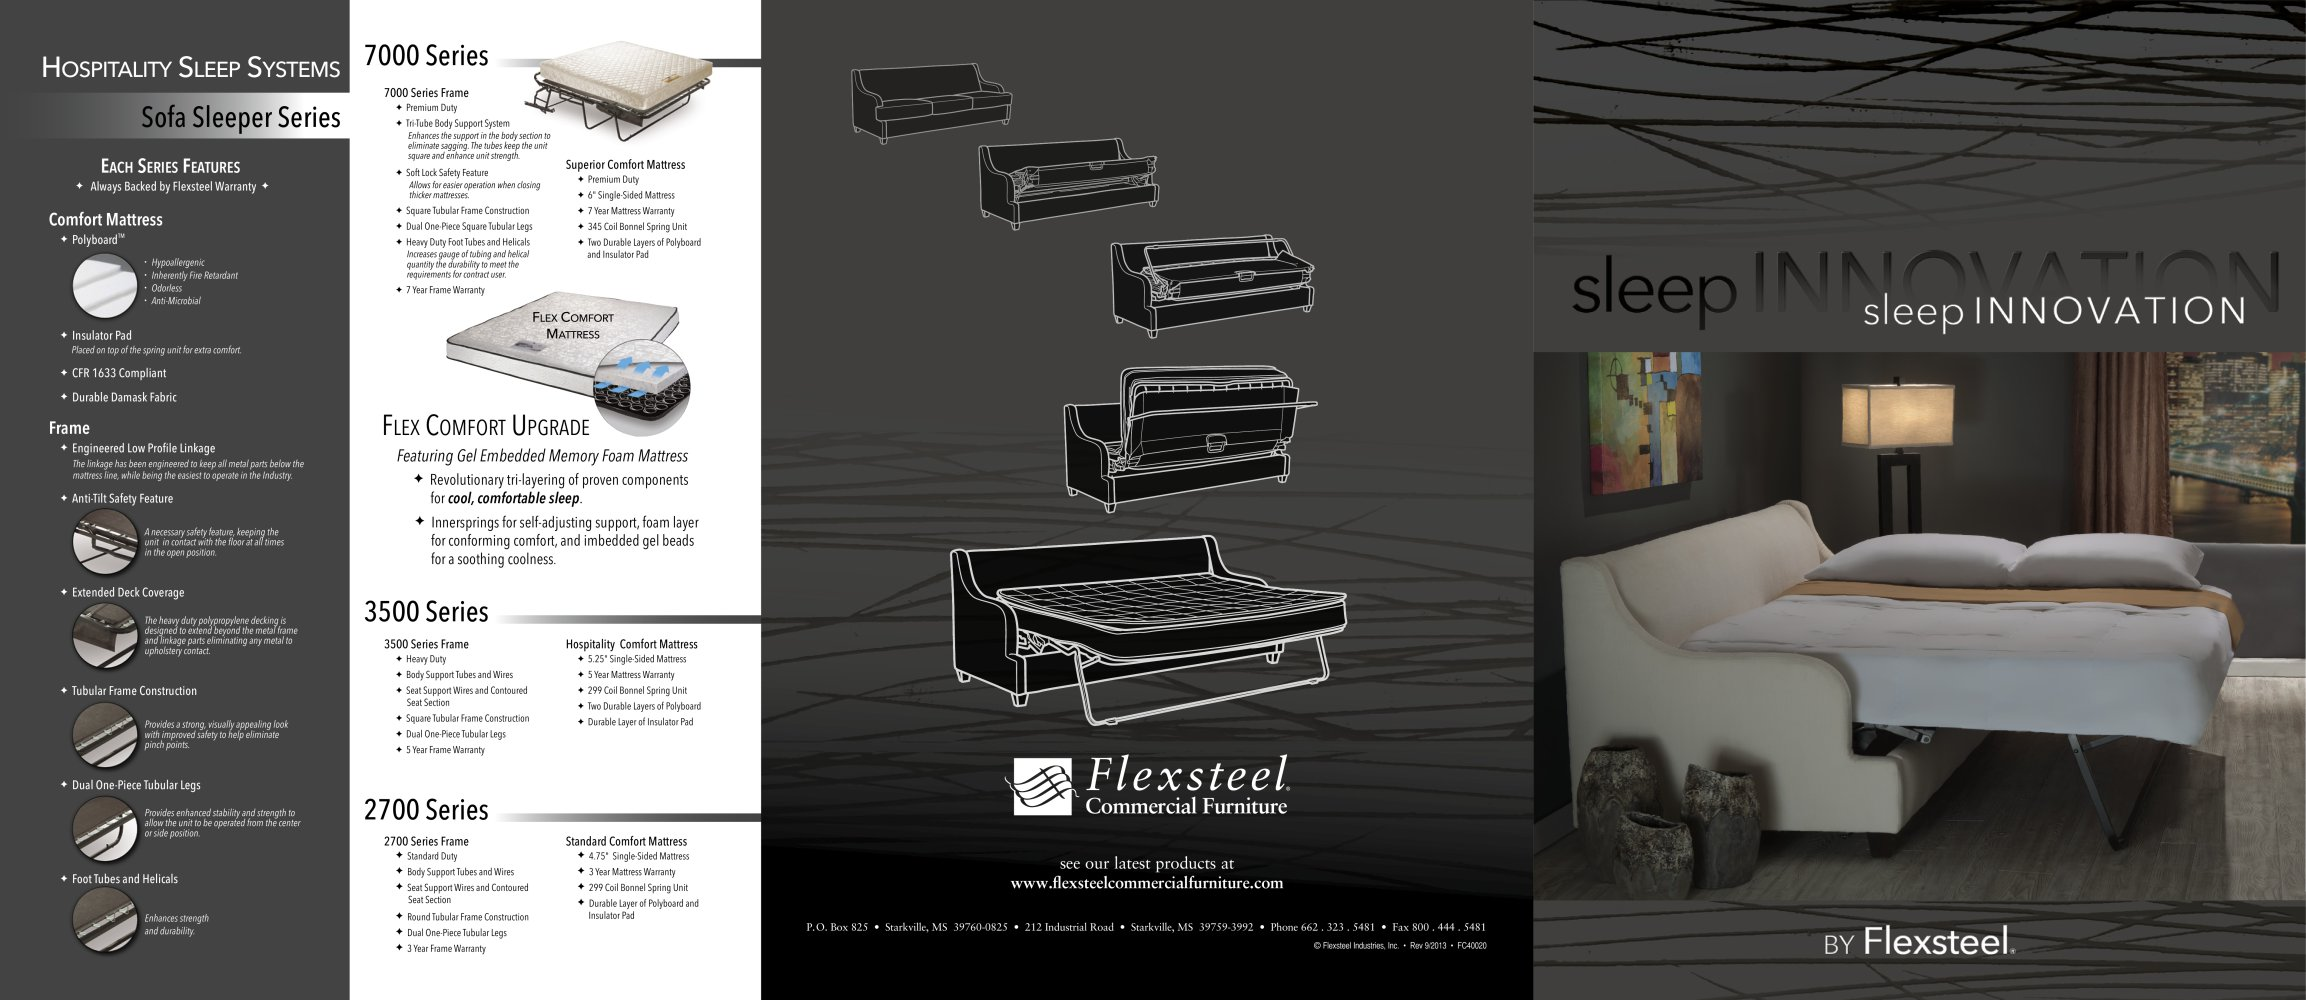 Flexsteel Sleeper Innovation Brochure 1 2 Pages